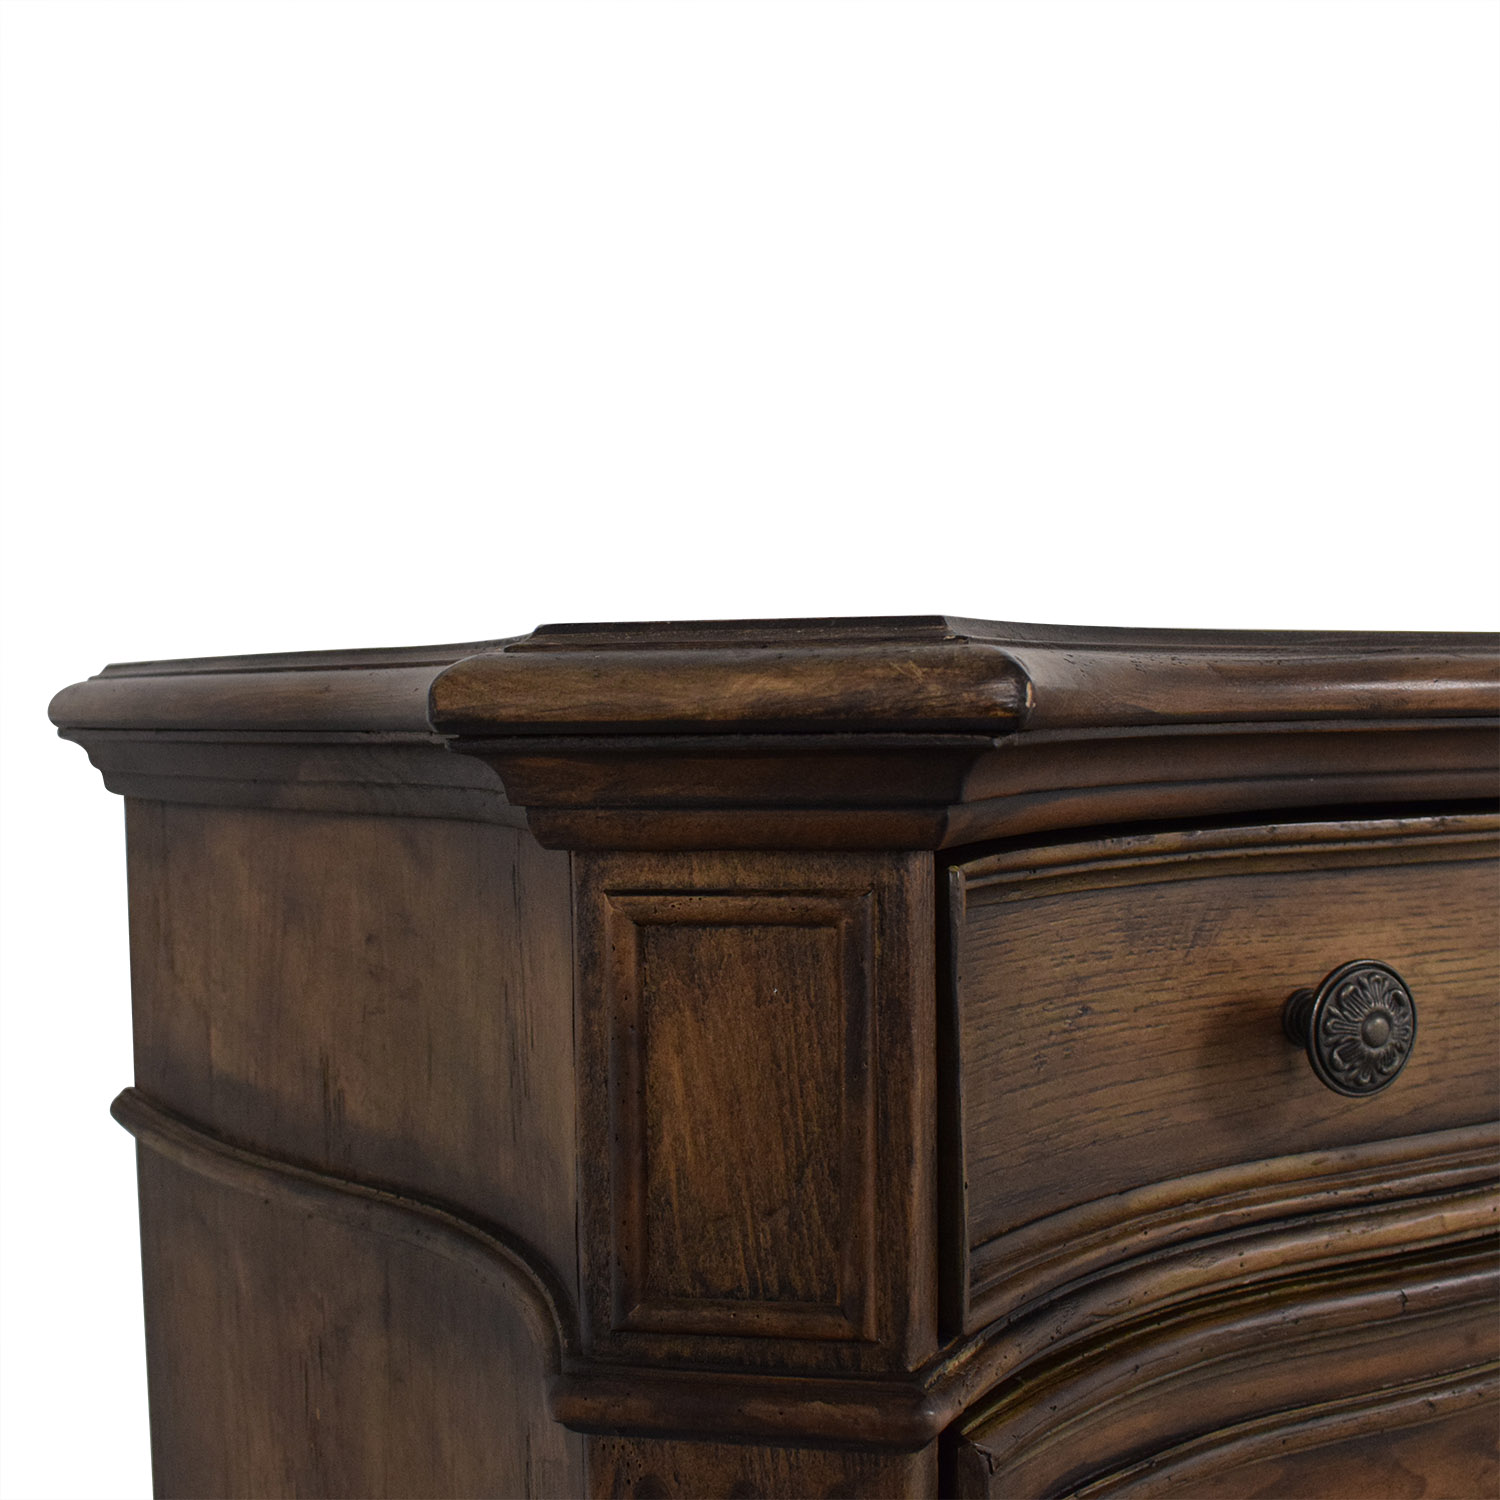 Hooker Furniture Hooker Furniture Rhapsody Five Drawer Chest discount